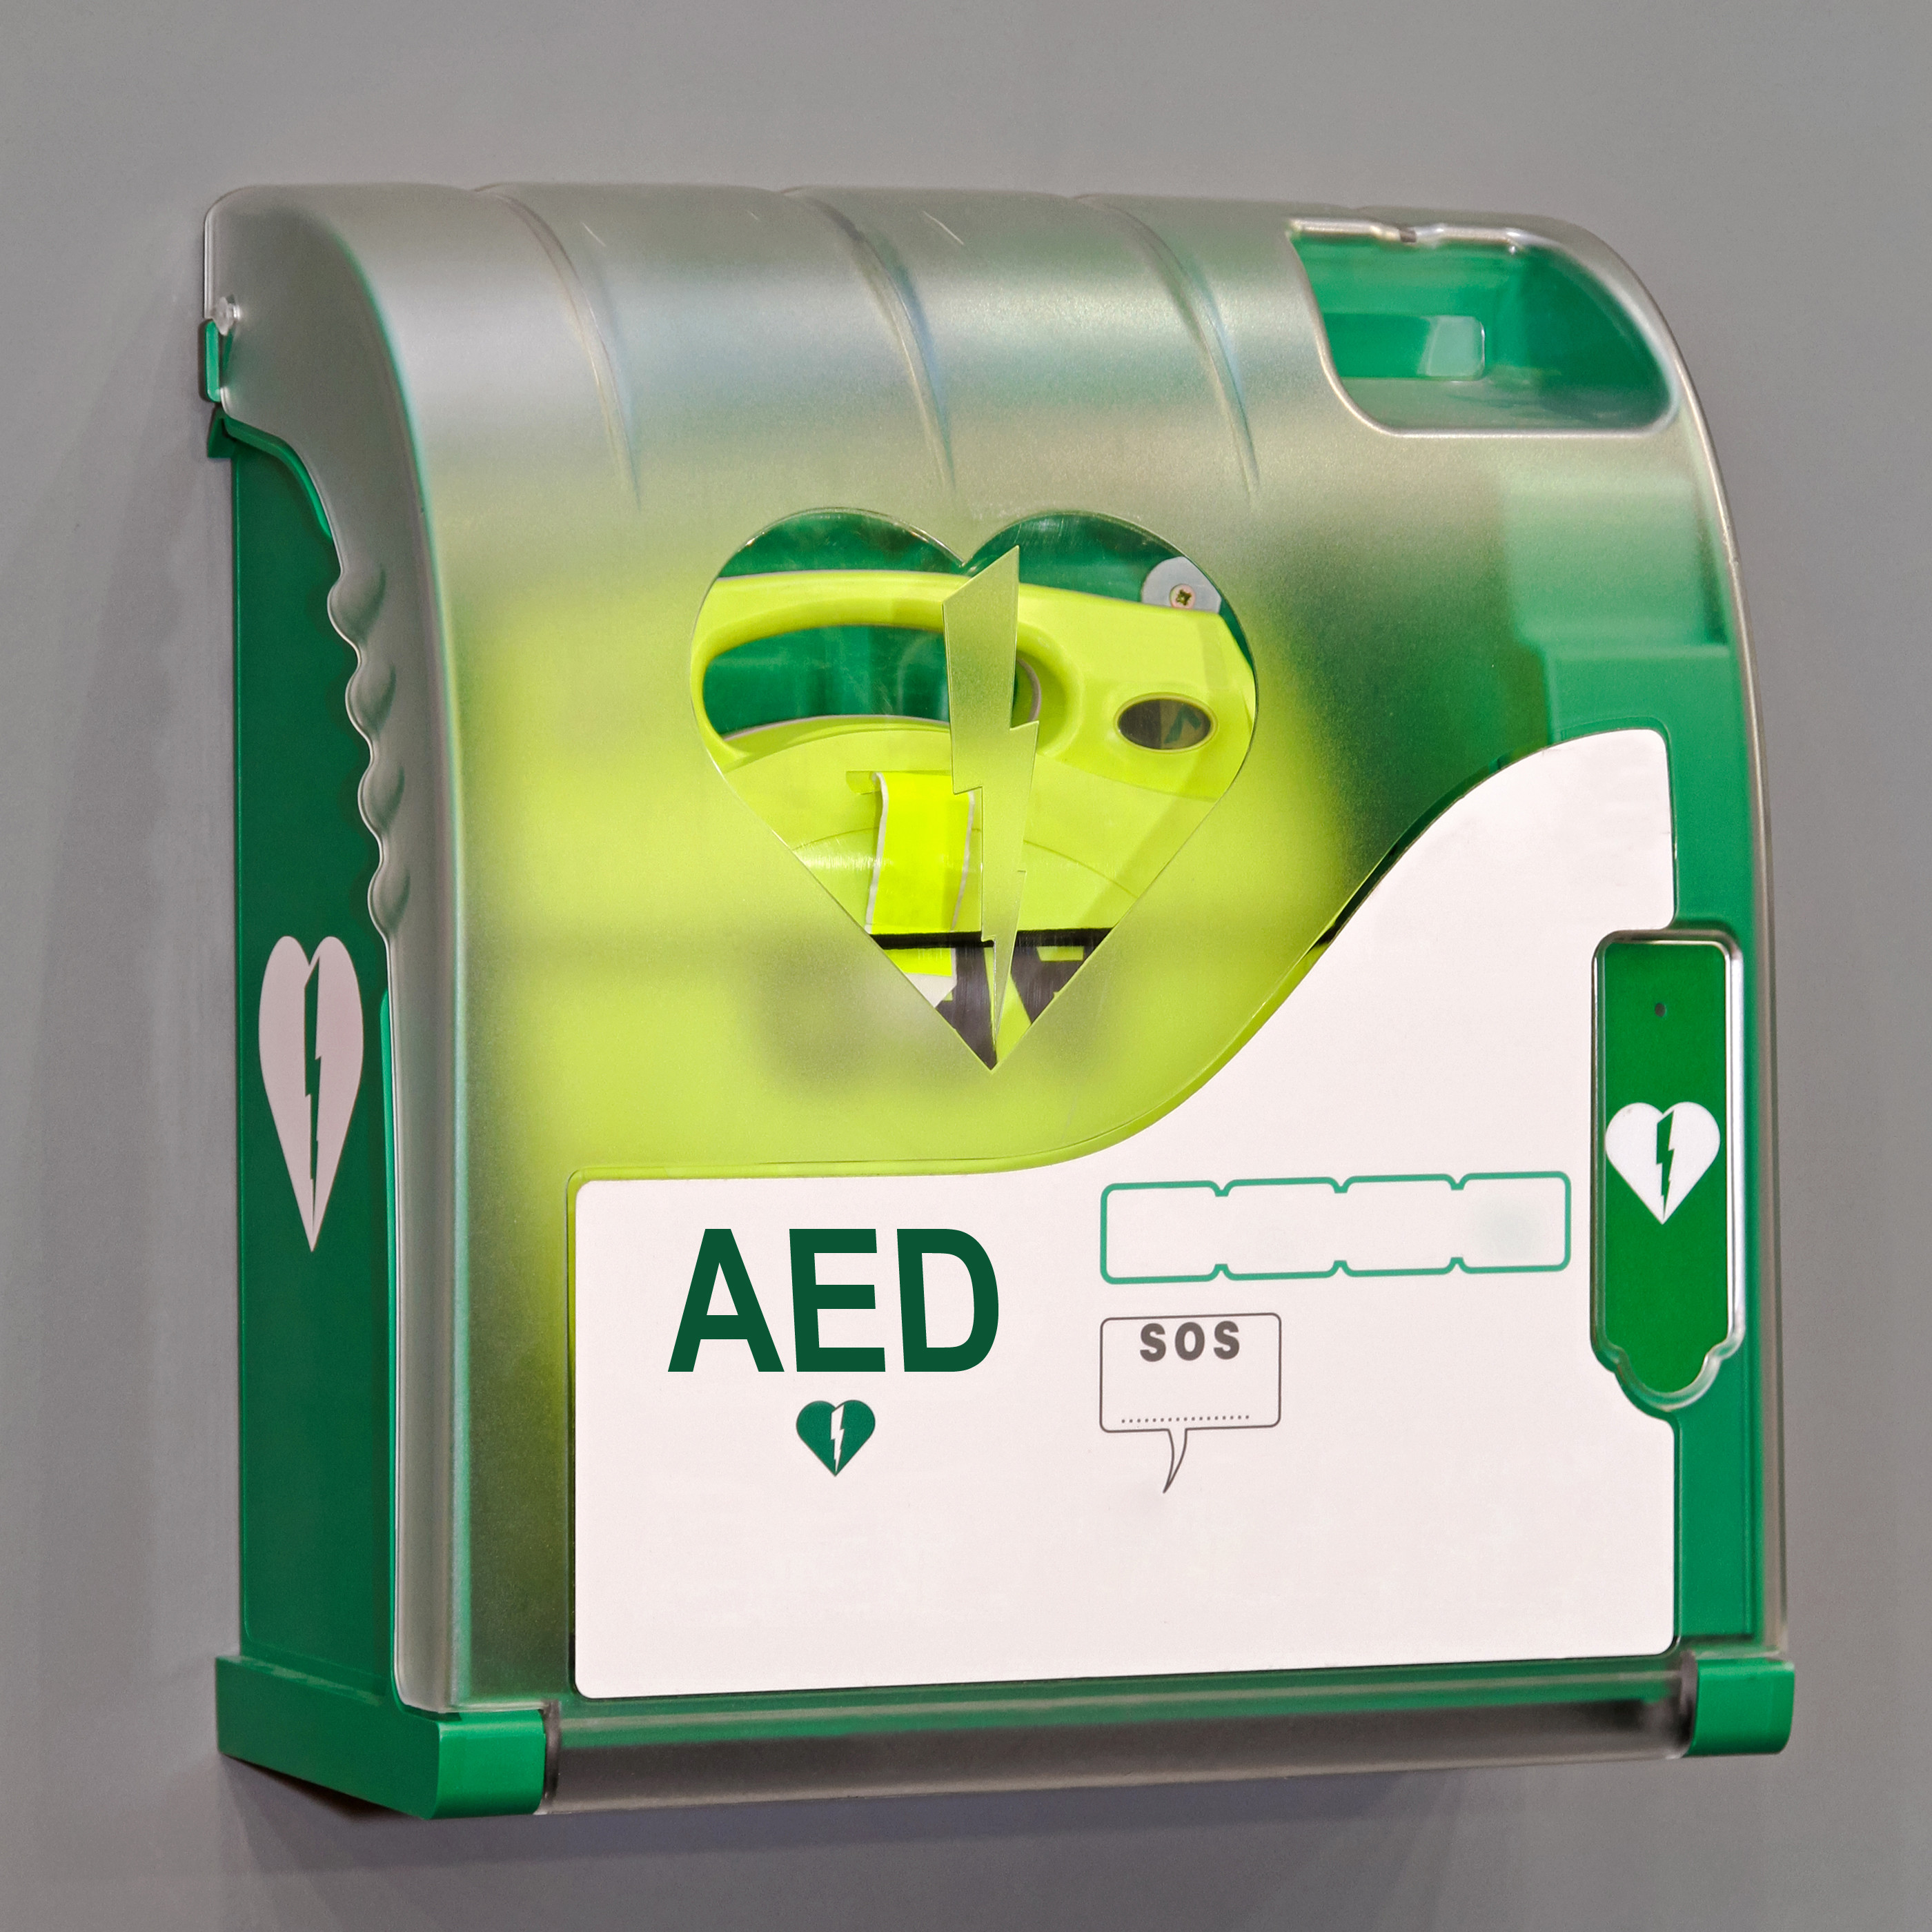 CK Getting More Defibrillators To Possibly Save Lives